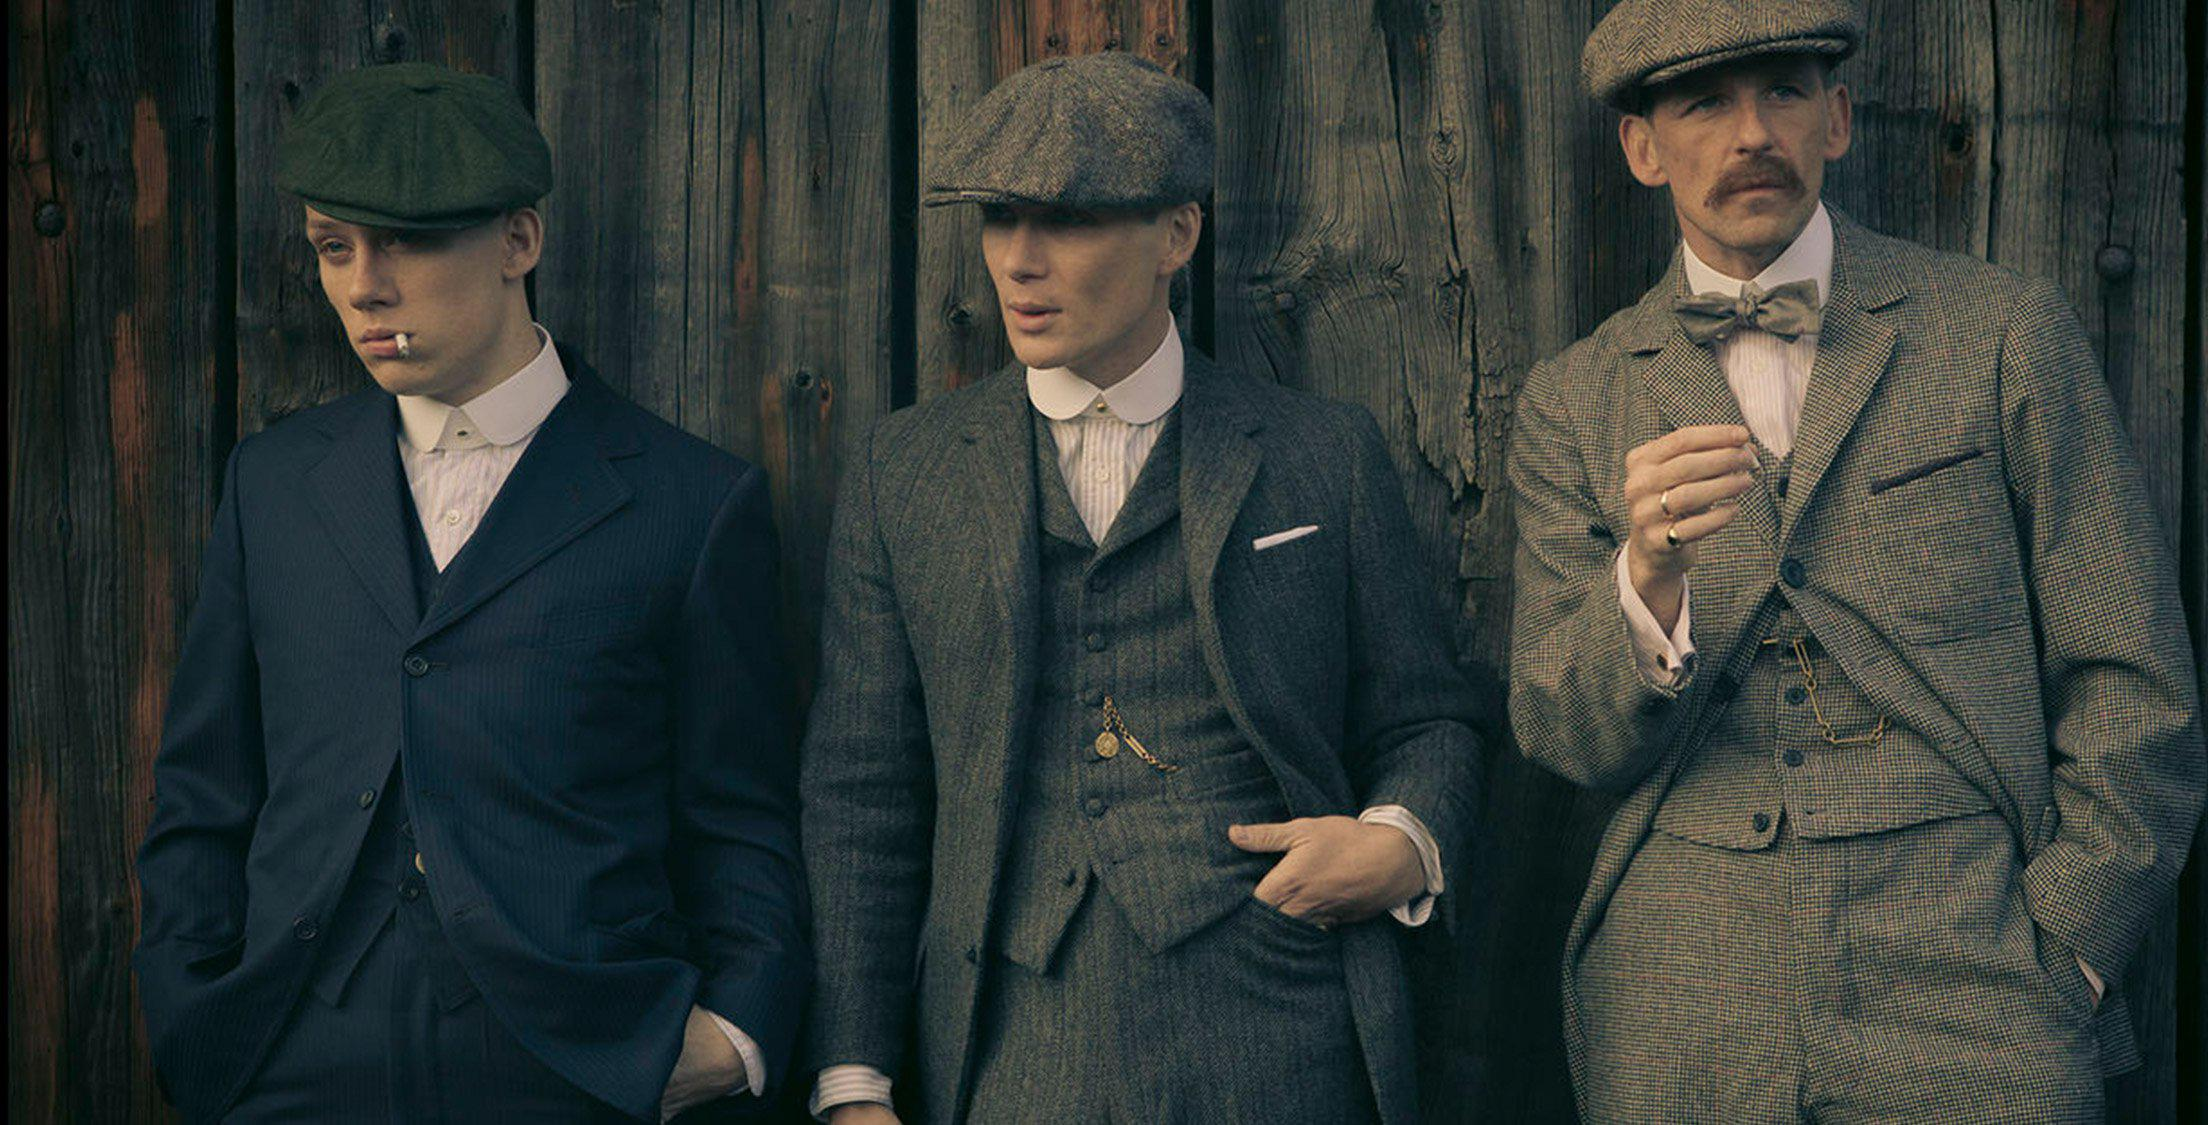 How to get the Peaky Blinders look